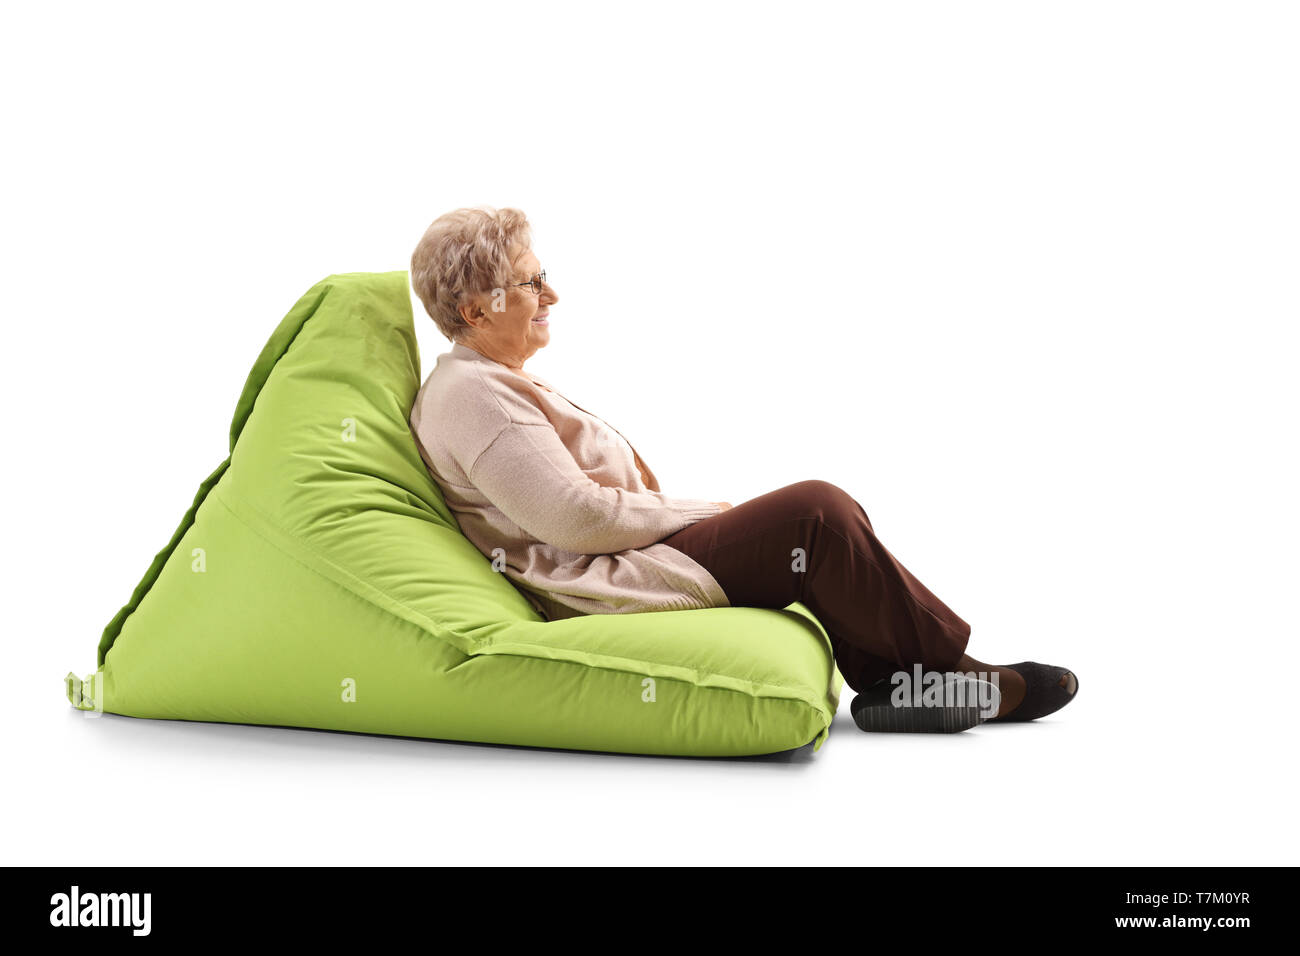 Full length profile shot of a senior woman resting on a bean bag isolated on white background - Stock Image